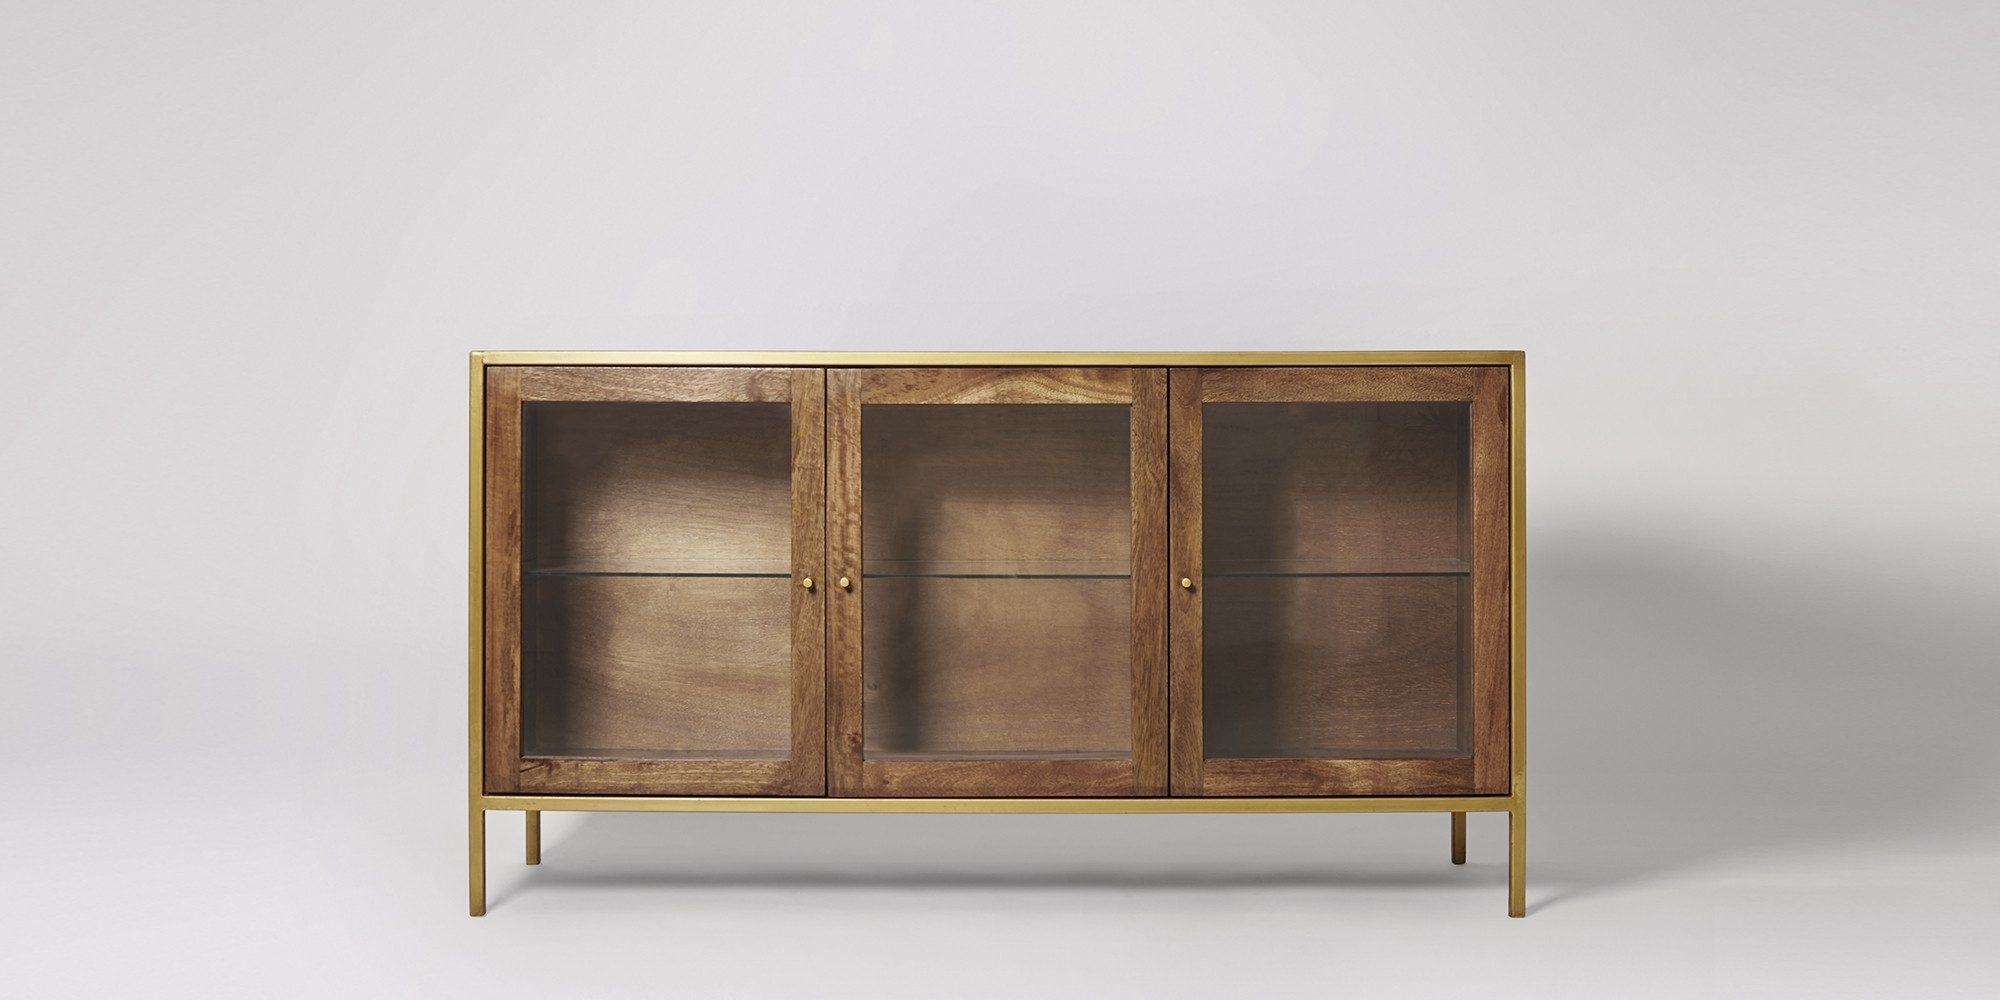 My Picks: Sideboards intended for Reclaimed Elm 71 Inch Sideboards (Image 14 of 30)